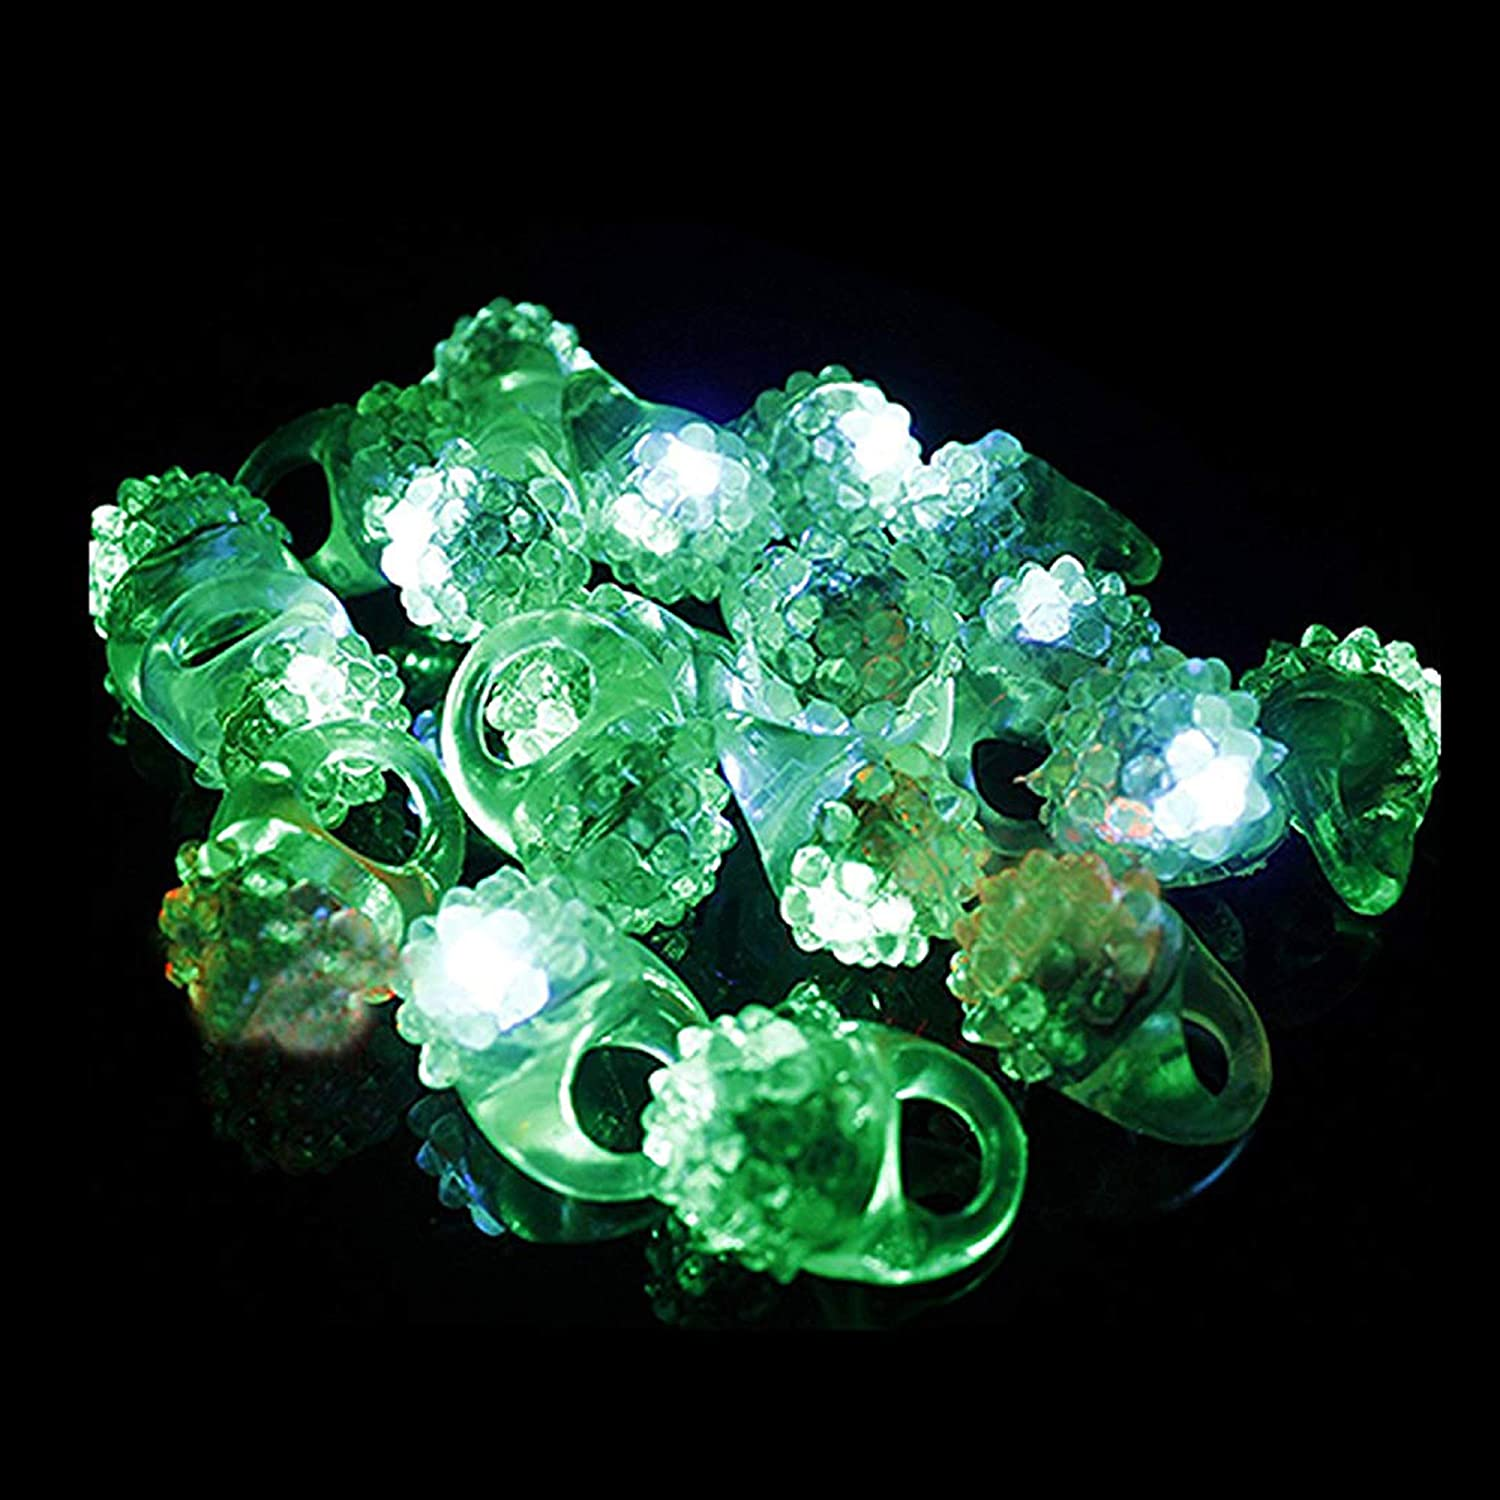 Fun Central AJ291 24 Count LED Jelly Green Bumpy Rings Green Glow Rings Flashing Rings Jelly Rings Led Rings Glow in the Dark Rings Flashing Led Bumpy Rings Green